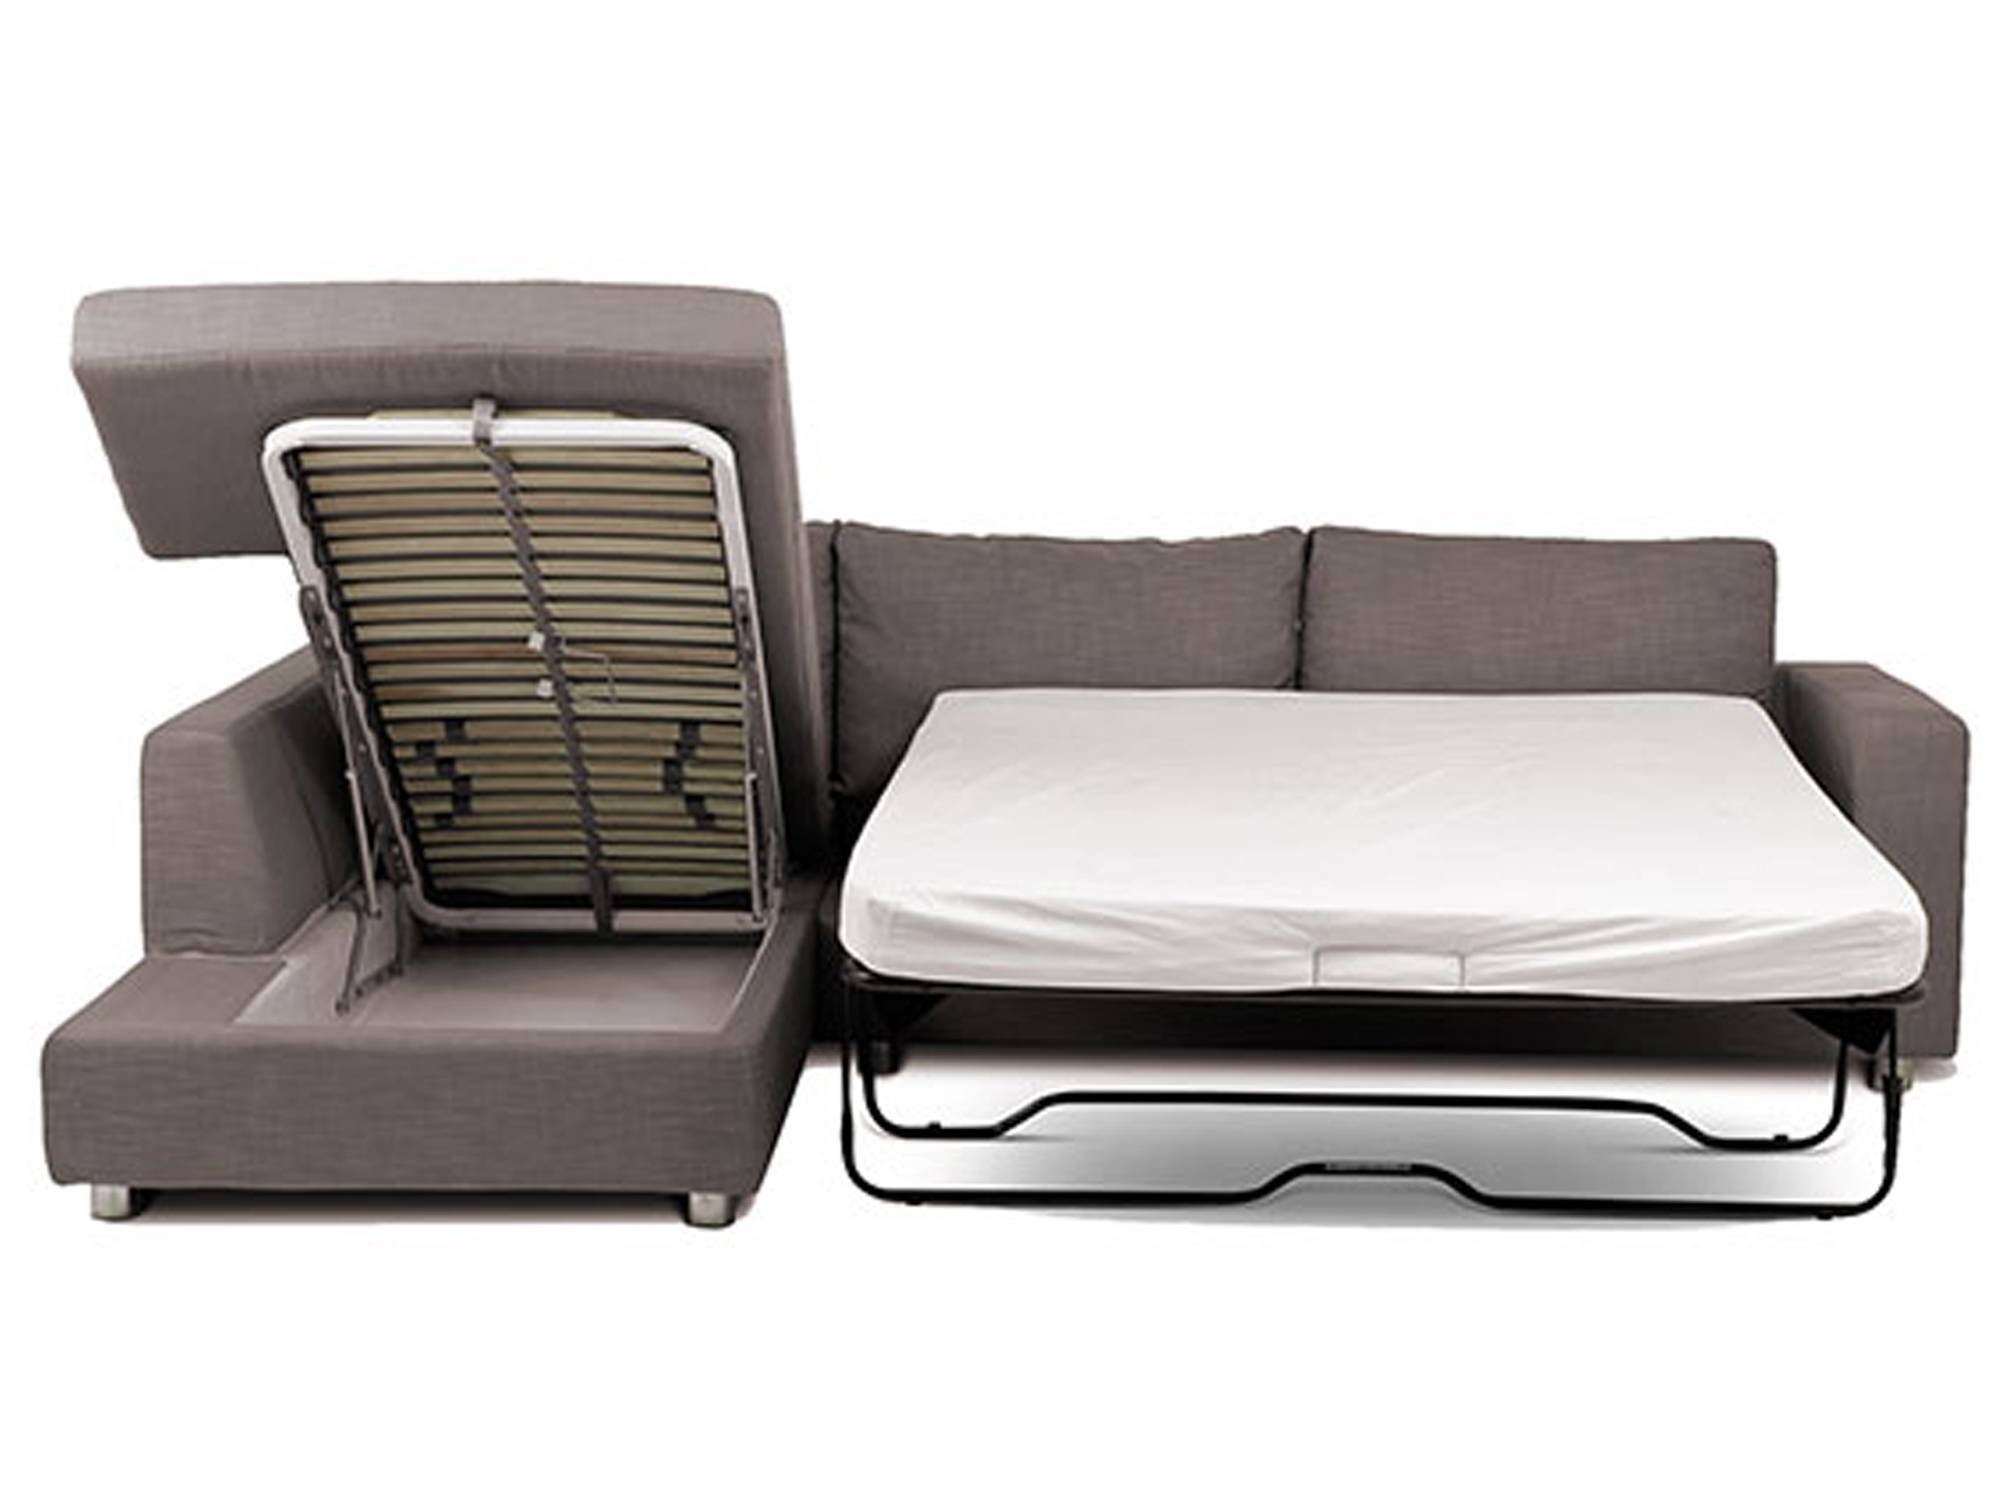 Small Sofa Bed With Storage | Tehranmix Decoration within Very Small Sofas (Image 4 of 25)